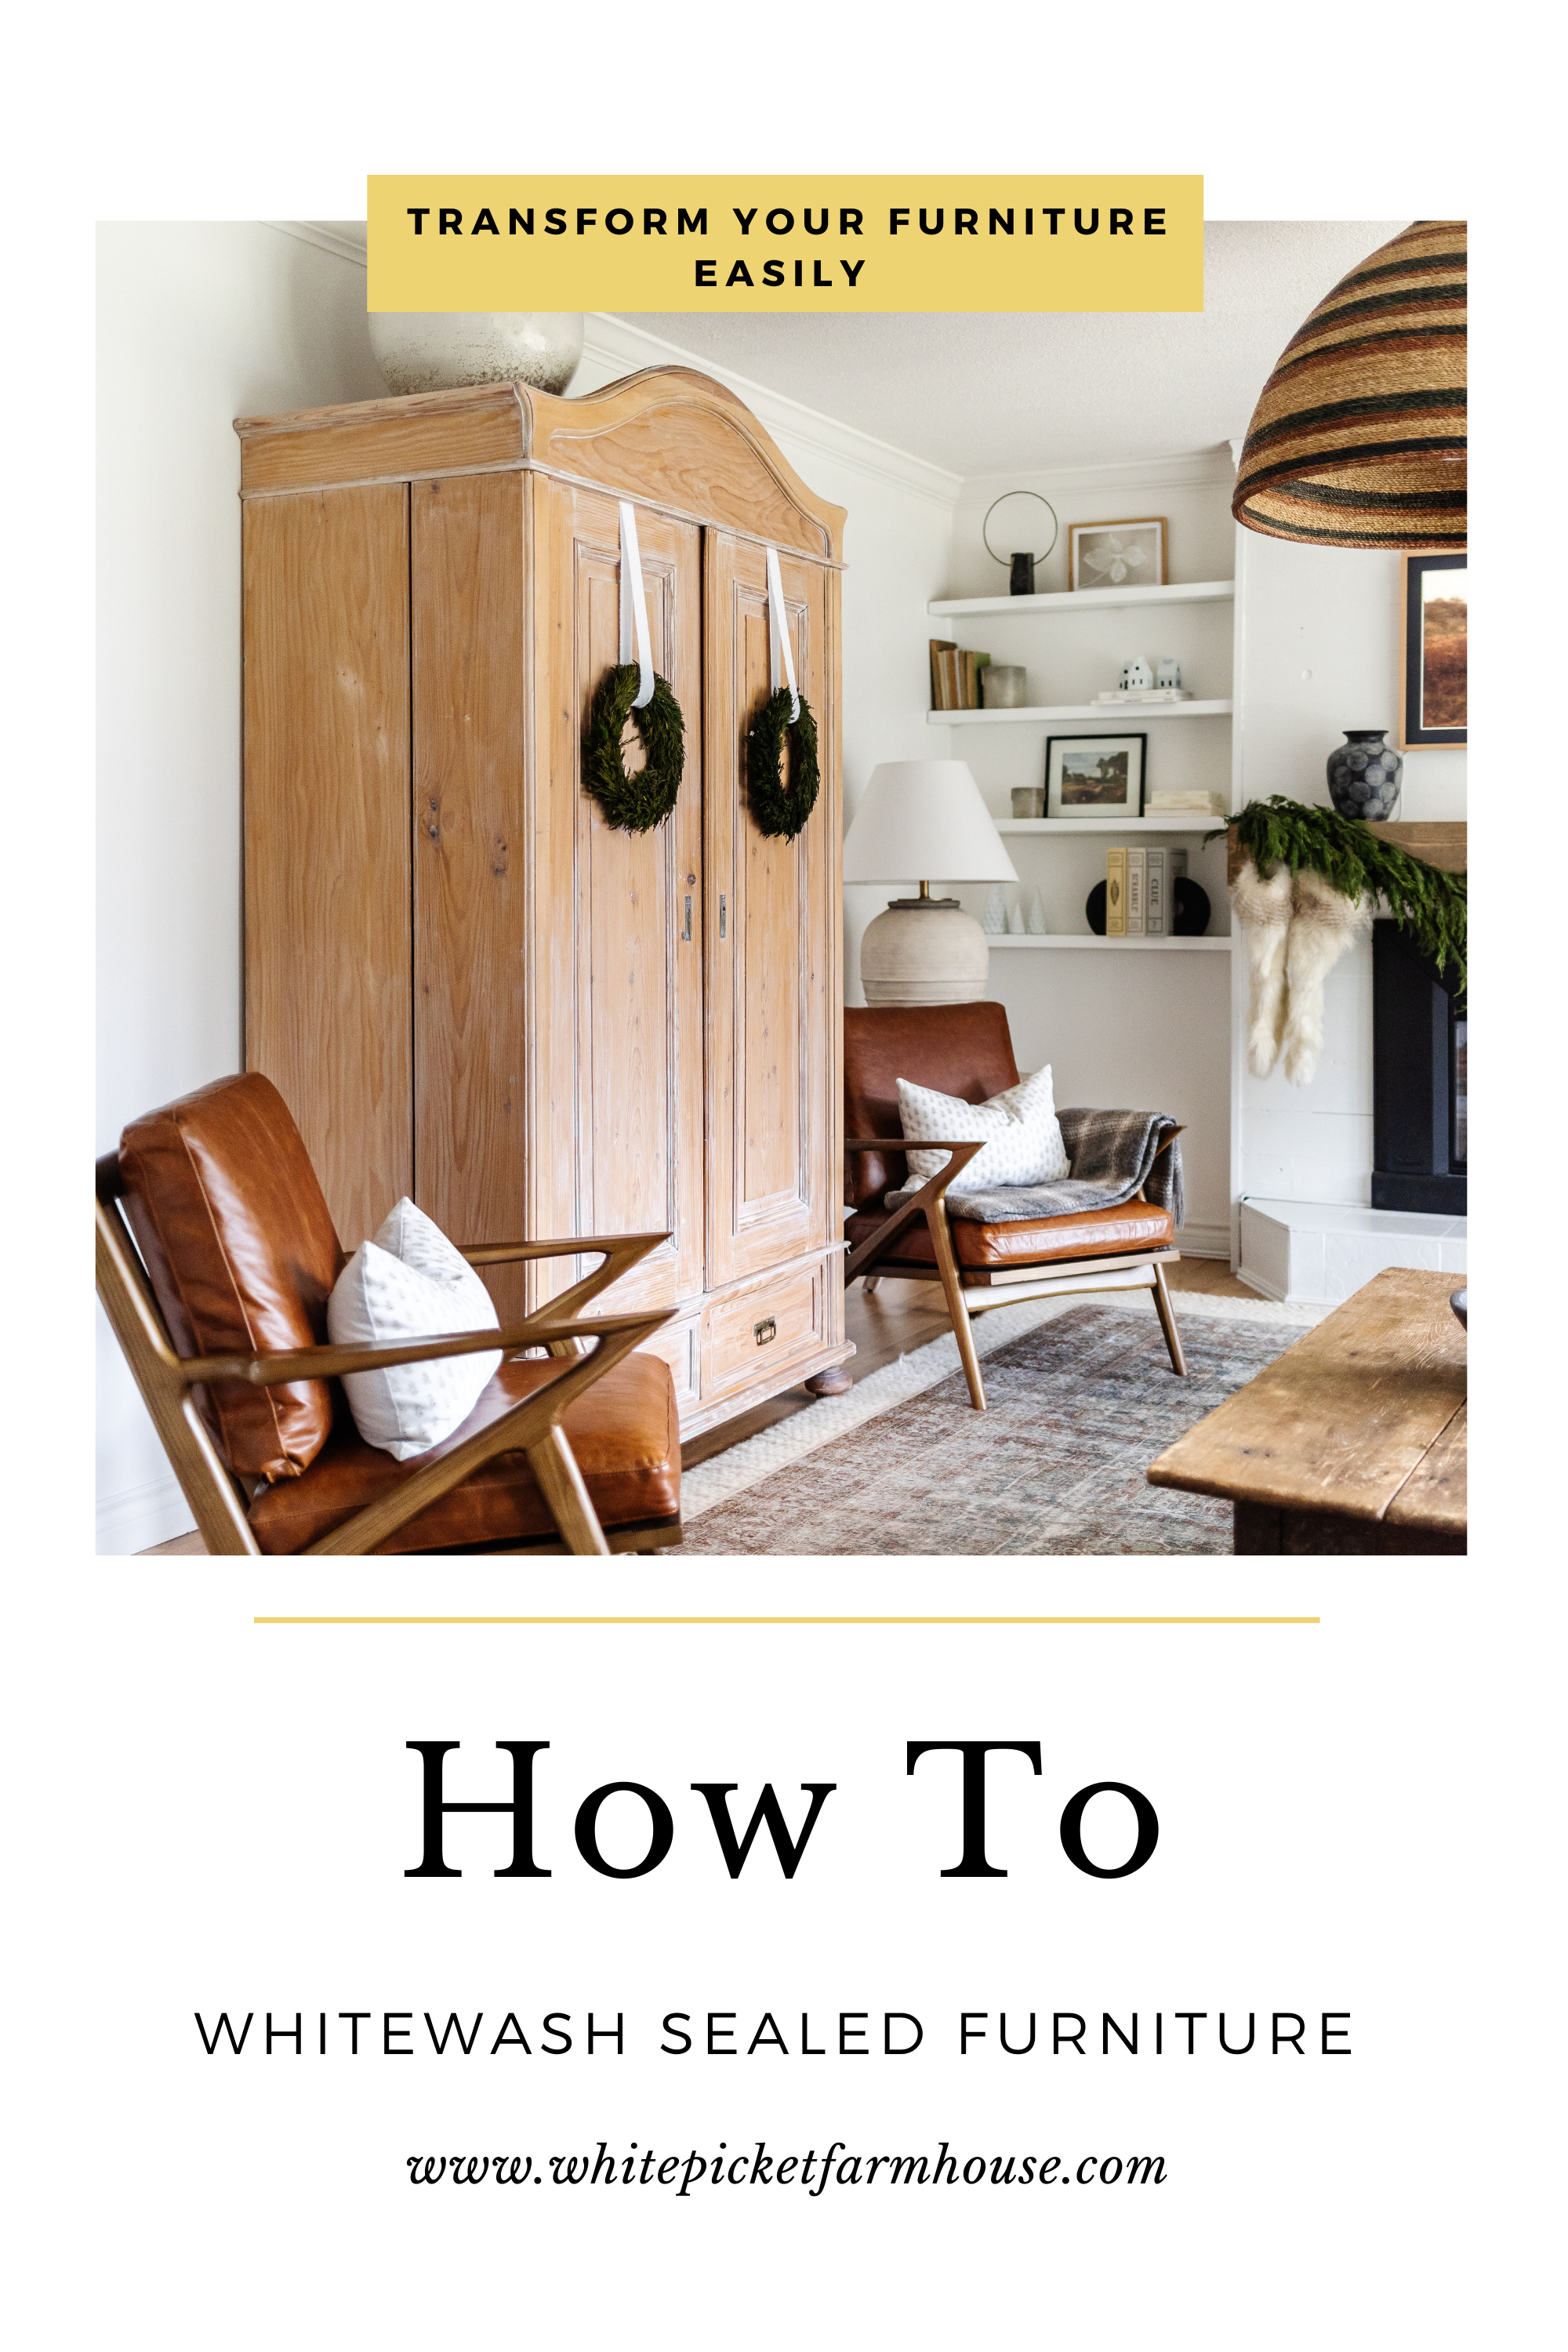 How To Whitewash Sealed Furniture! Do you really hate the colour of your furniture? Is it orange or red? Here's a quick process that can get you by until you have time to strip it!